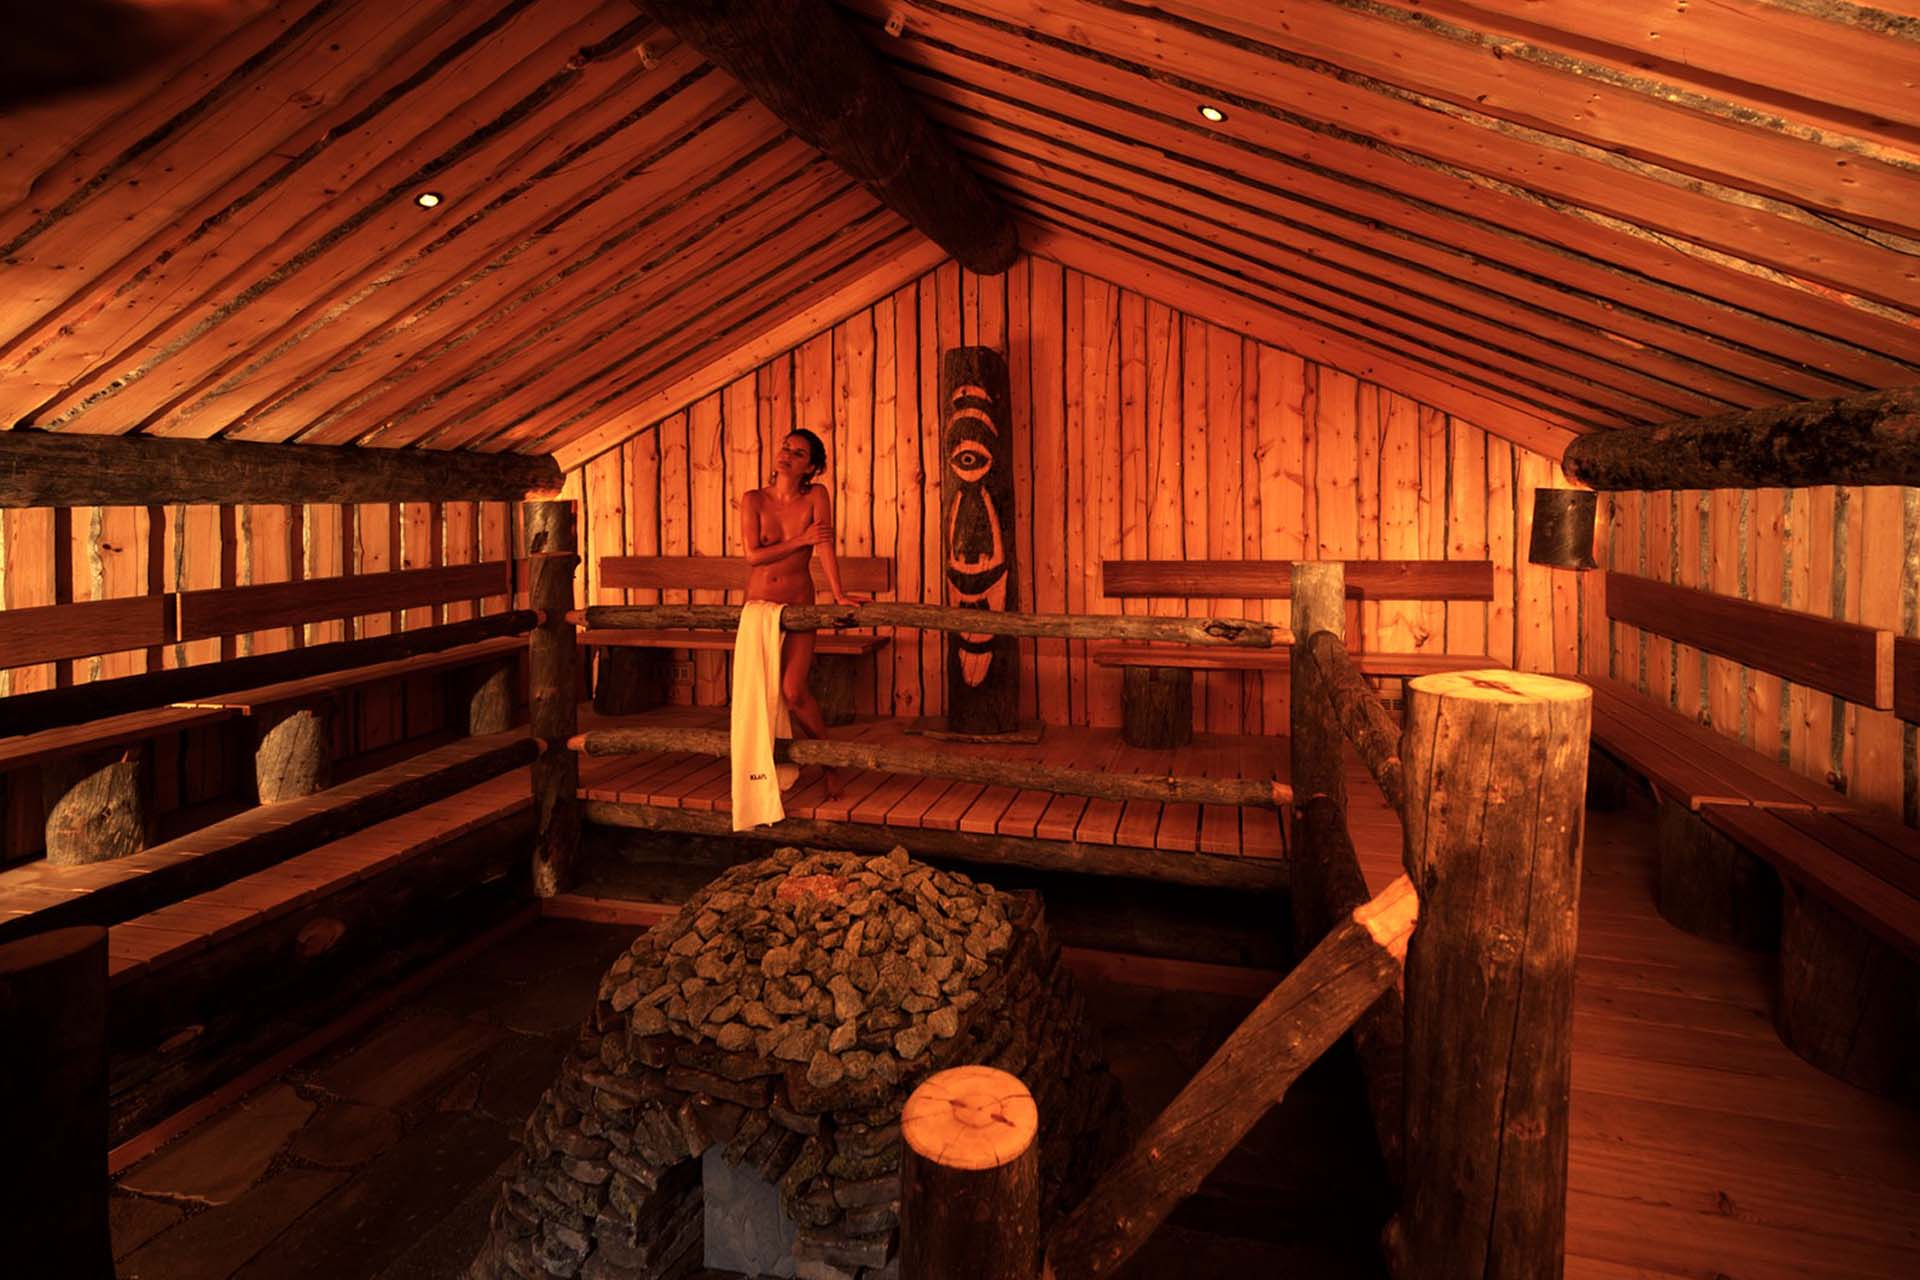 Stadelsauna im Alpspitz-Bade-Center